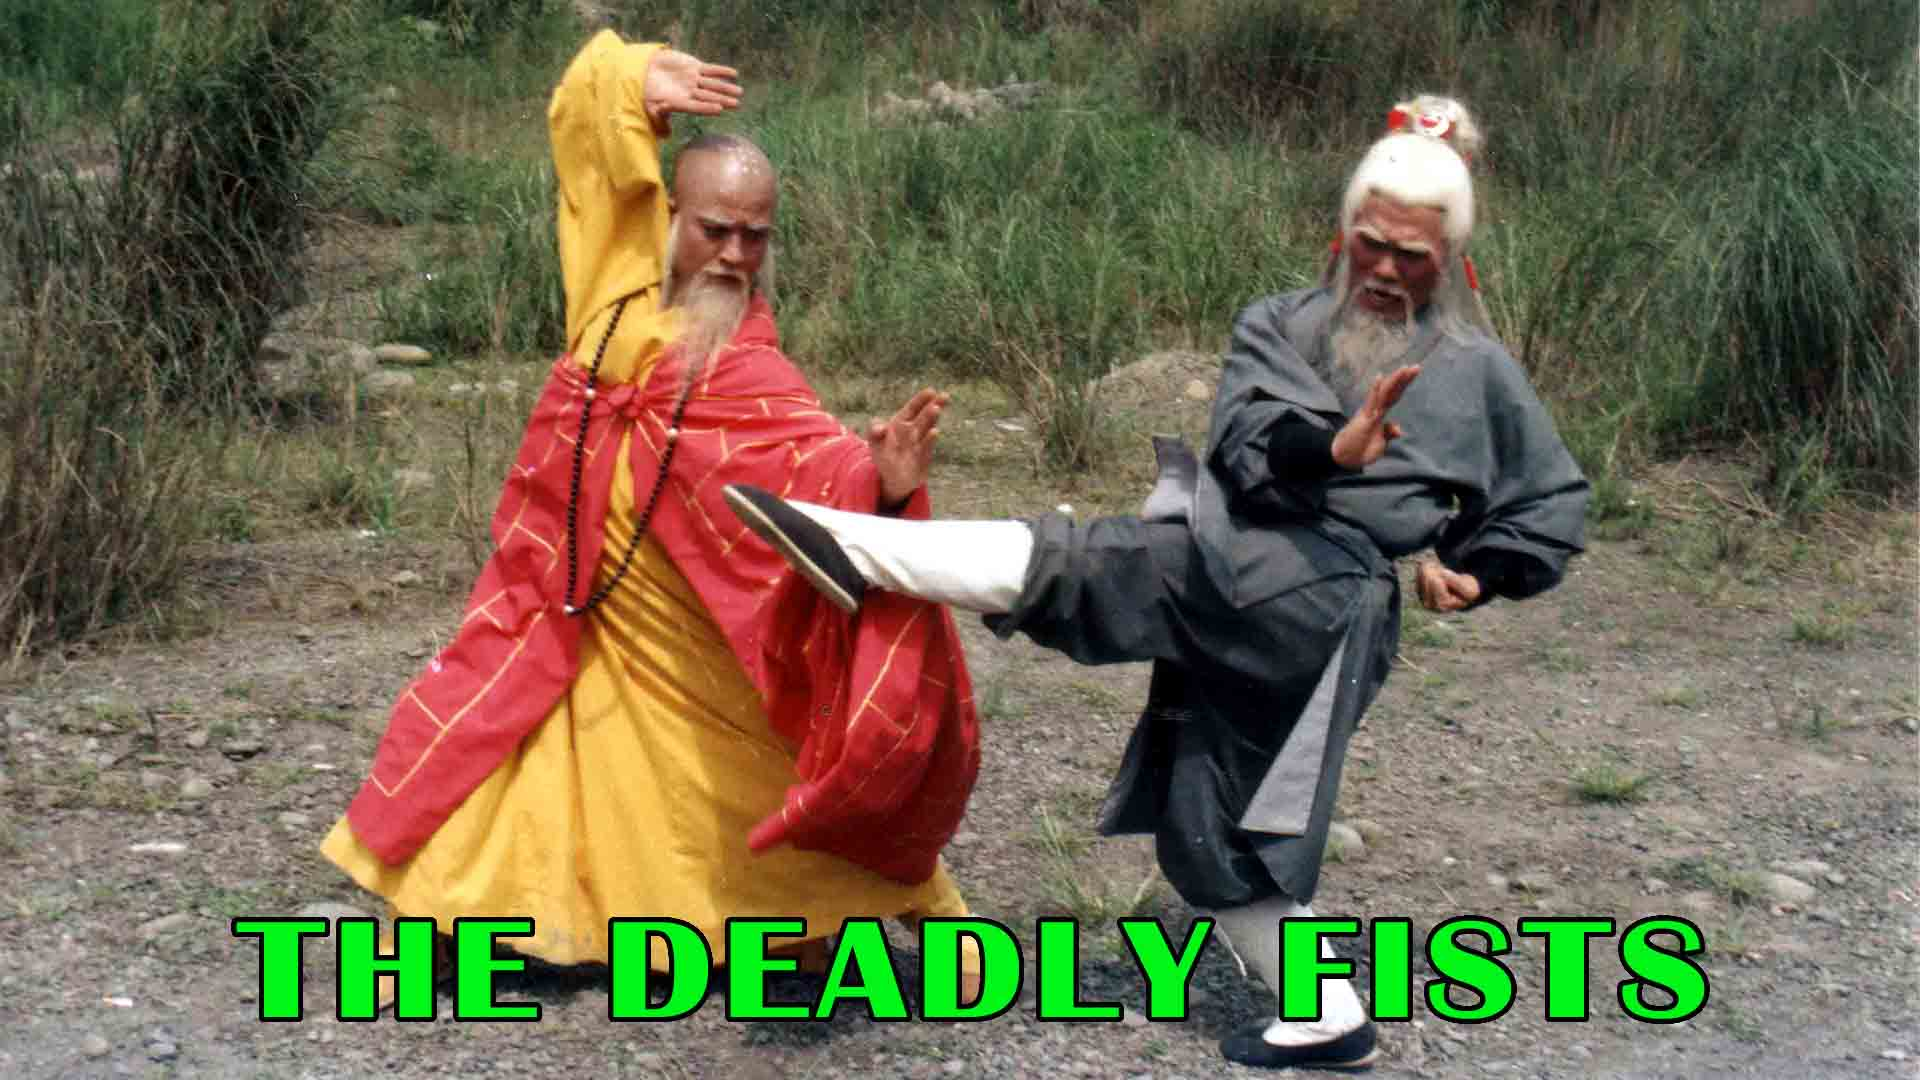 The Deadly Fists